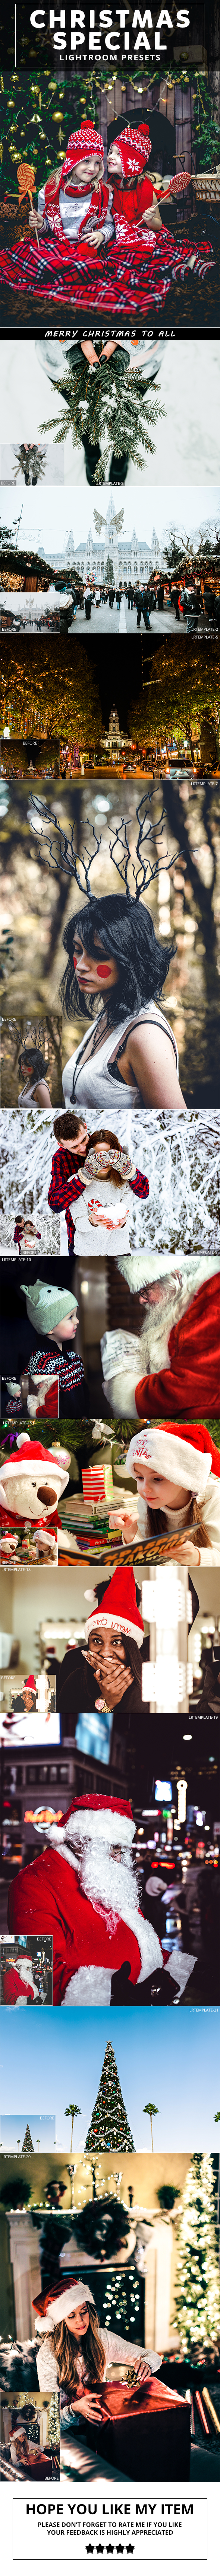 22 Christmas Special Lightroom Presets - Lightroom Presets Add-ons